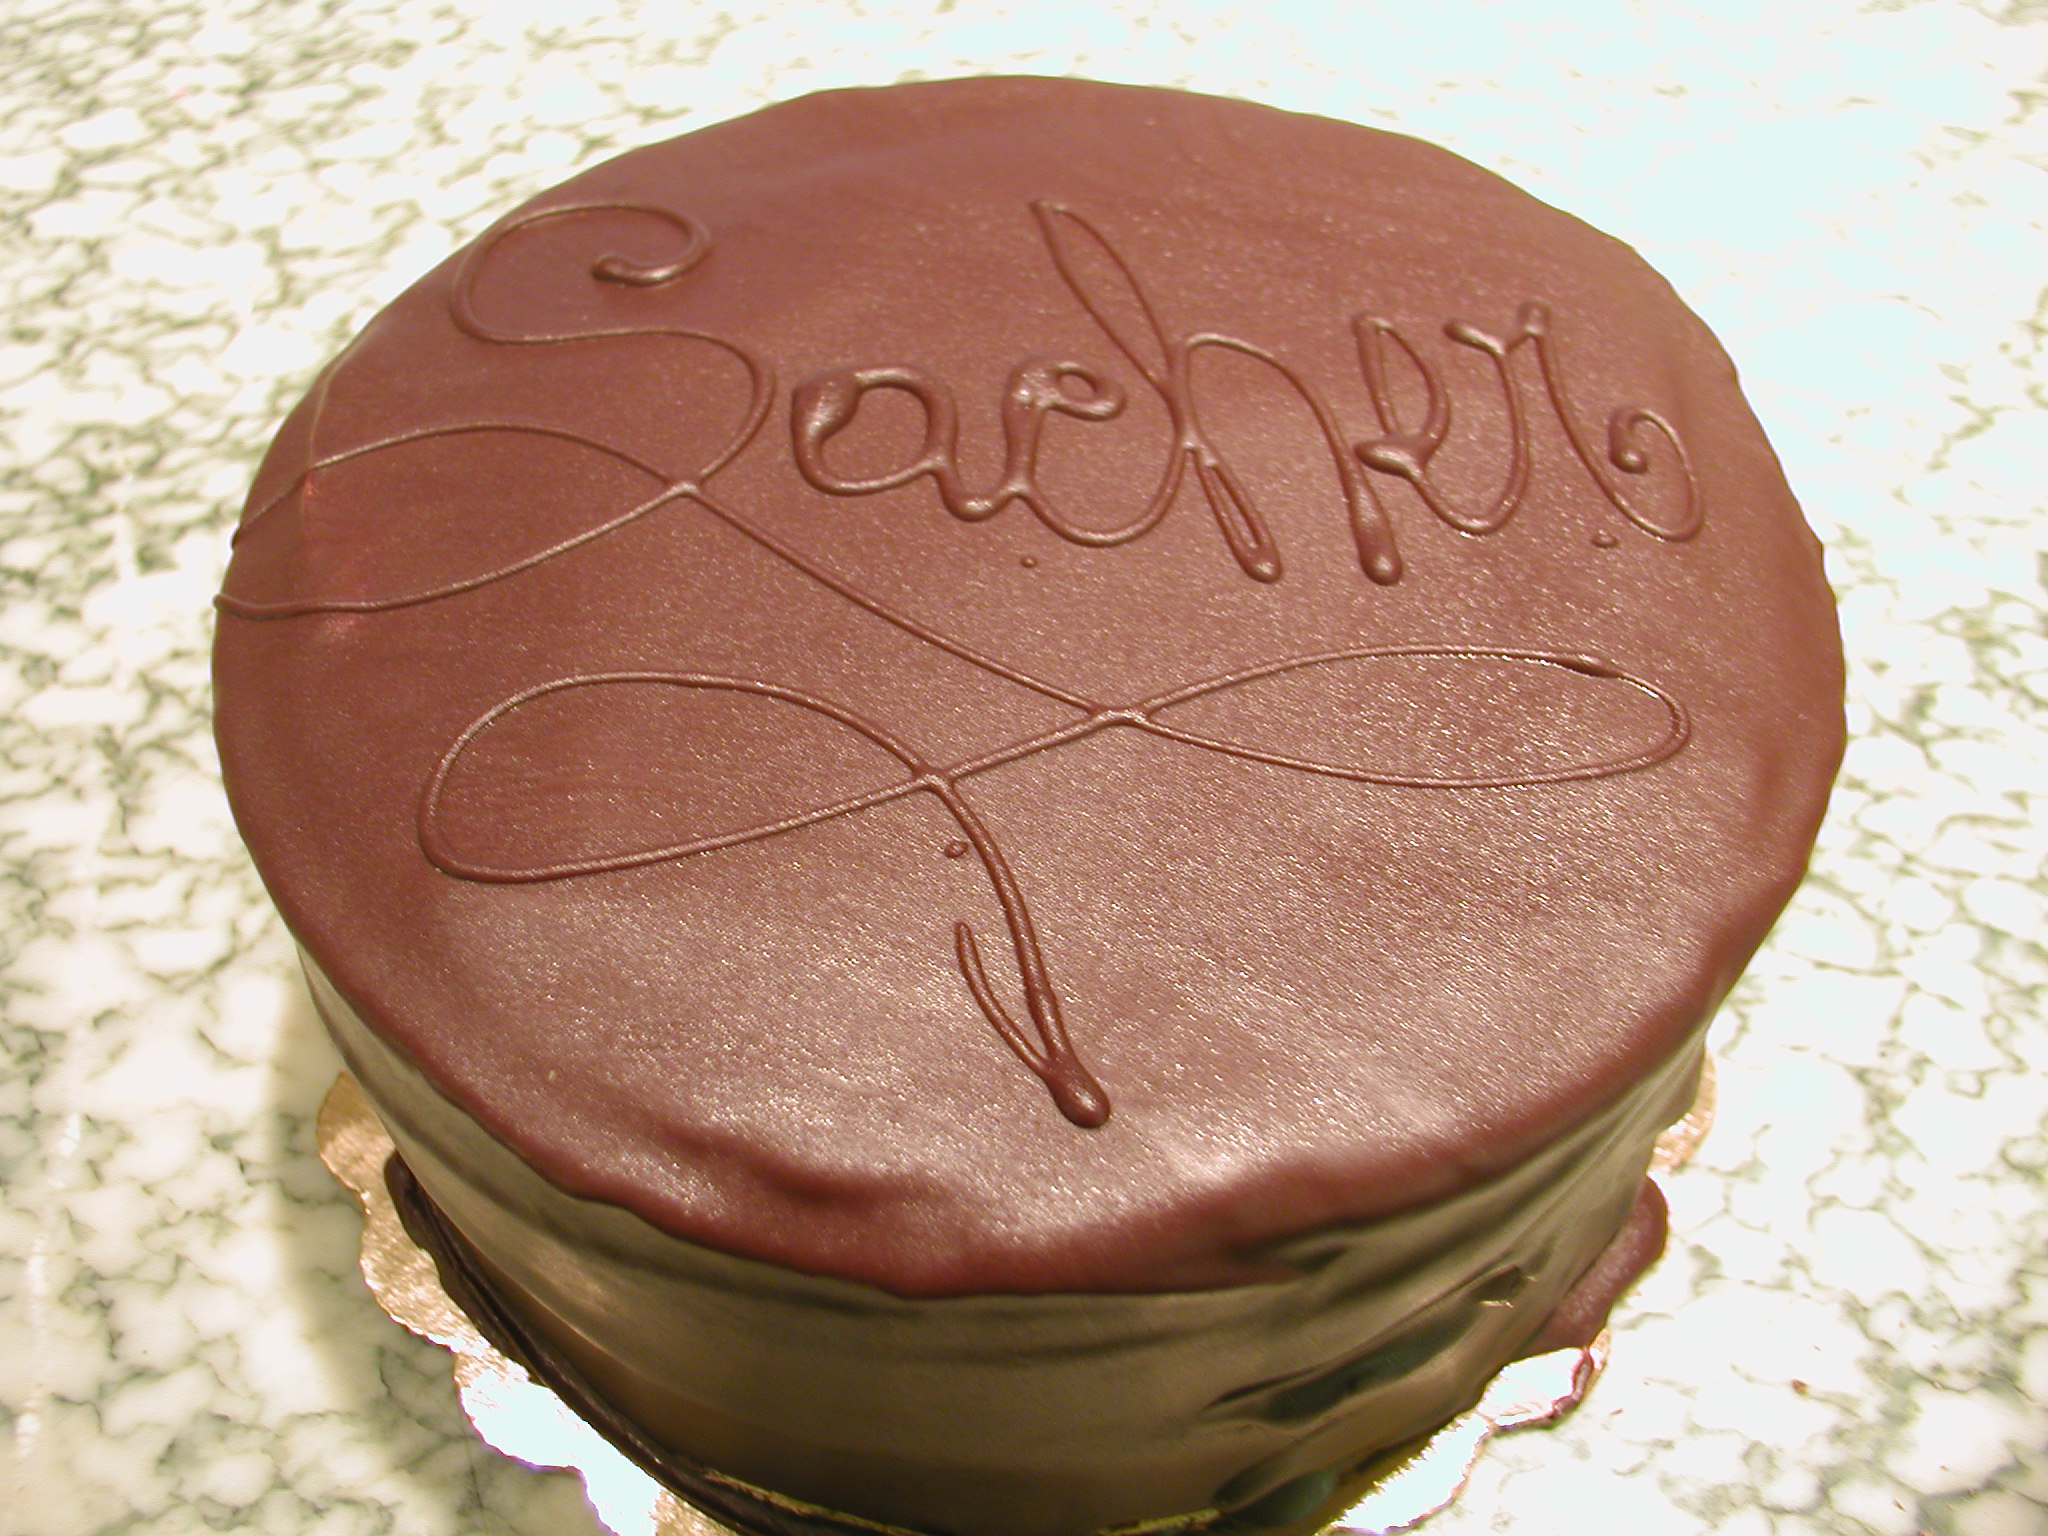 SACHER TORTE:A chocolate cake with apricot preserves between the layers, topped with a chocolate buttercream and draped chocolate ganache.